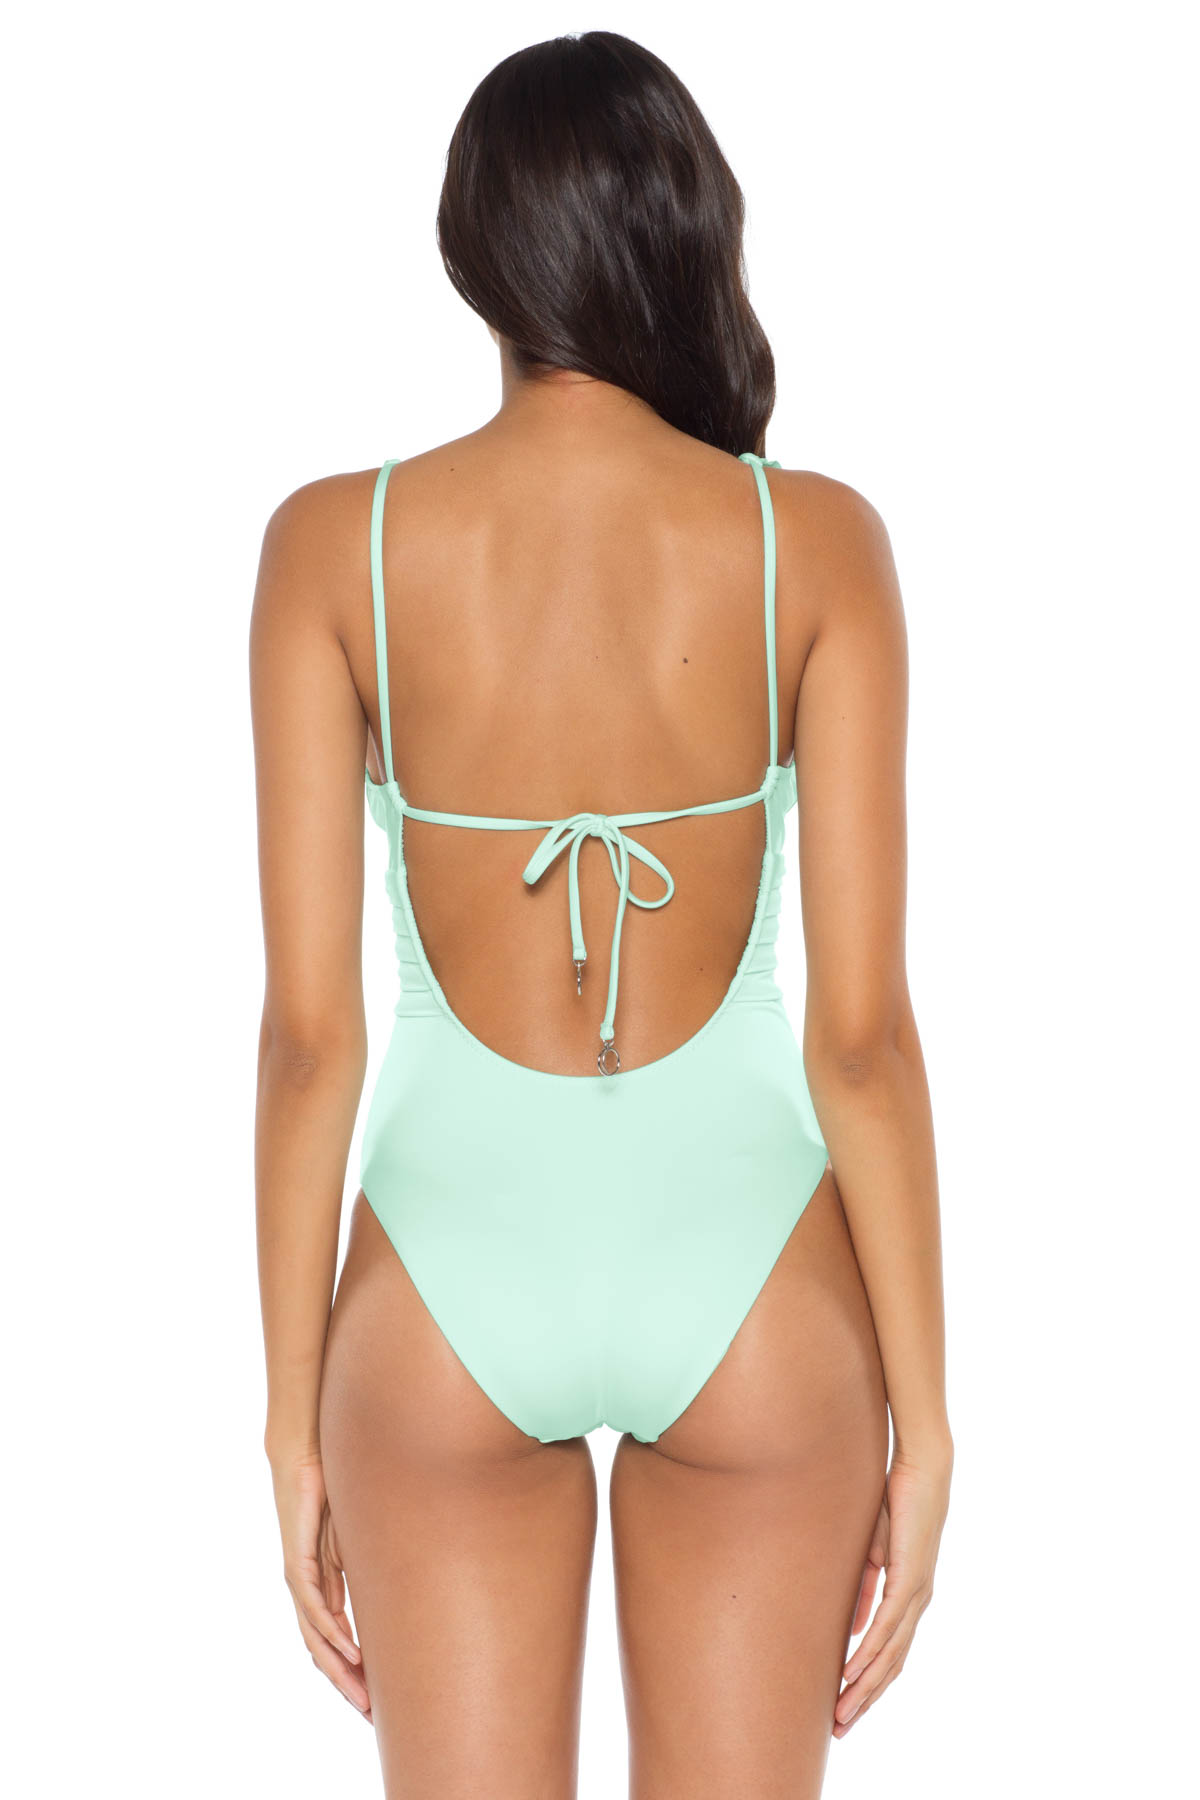 Ruffle Plunge One Piece Swimsuit - Fresh Mint 4